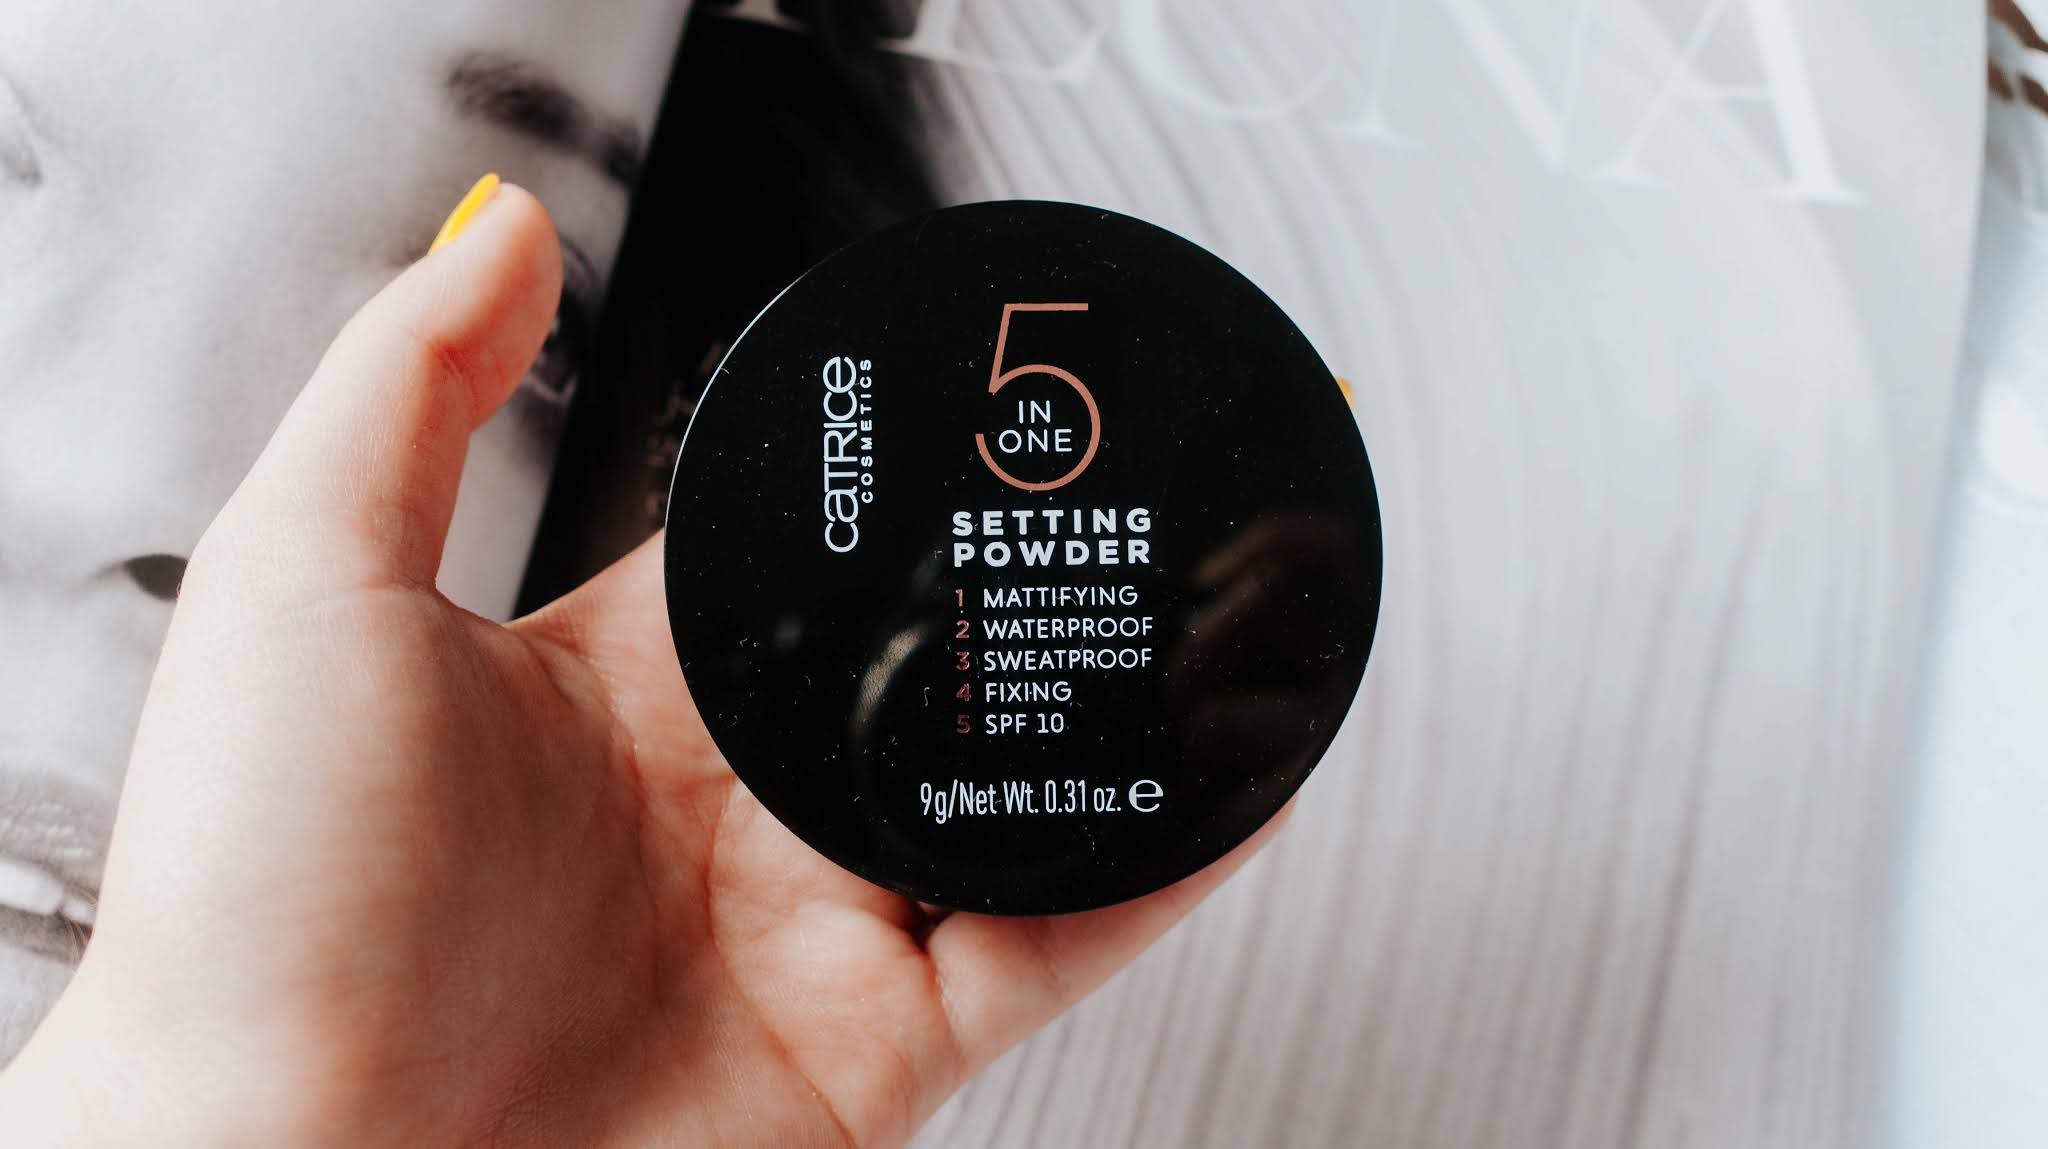 Catrice Setting powder 5 in 1